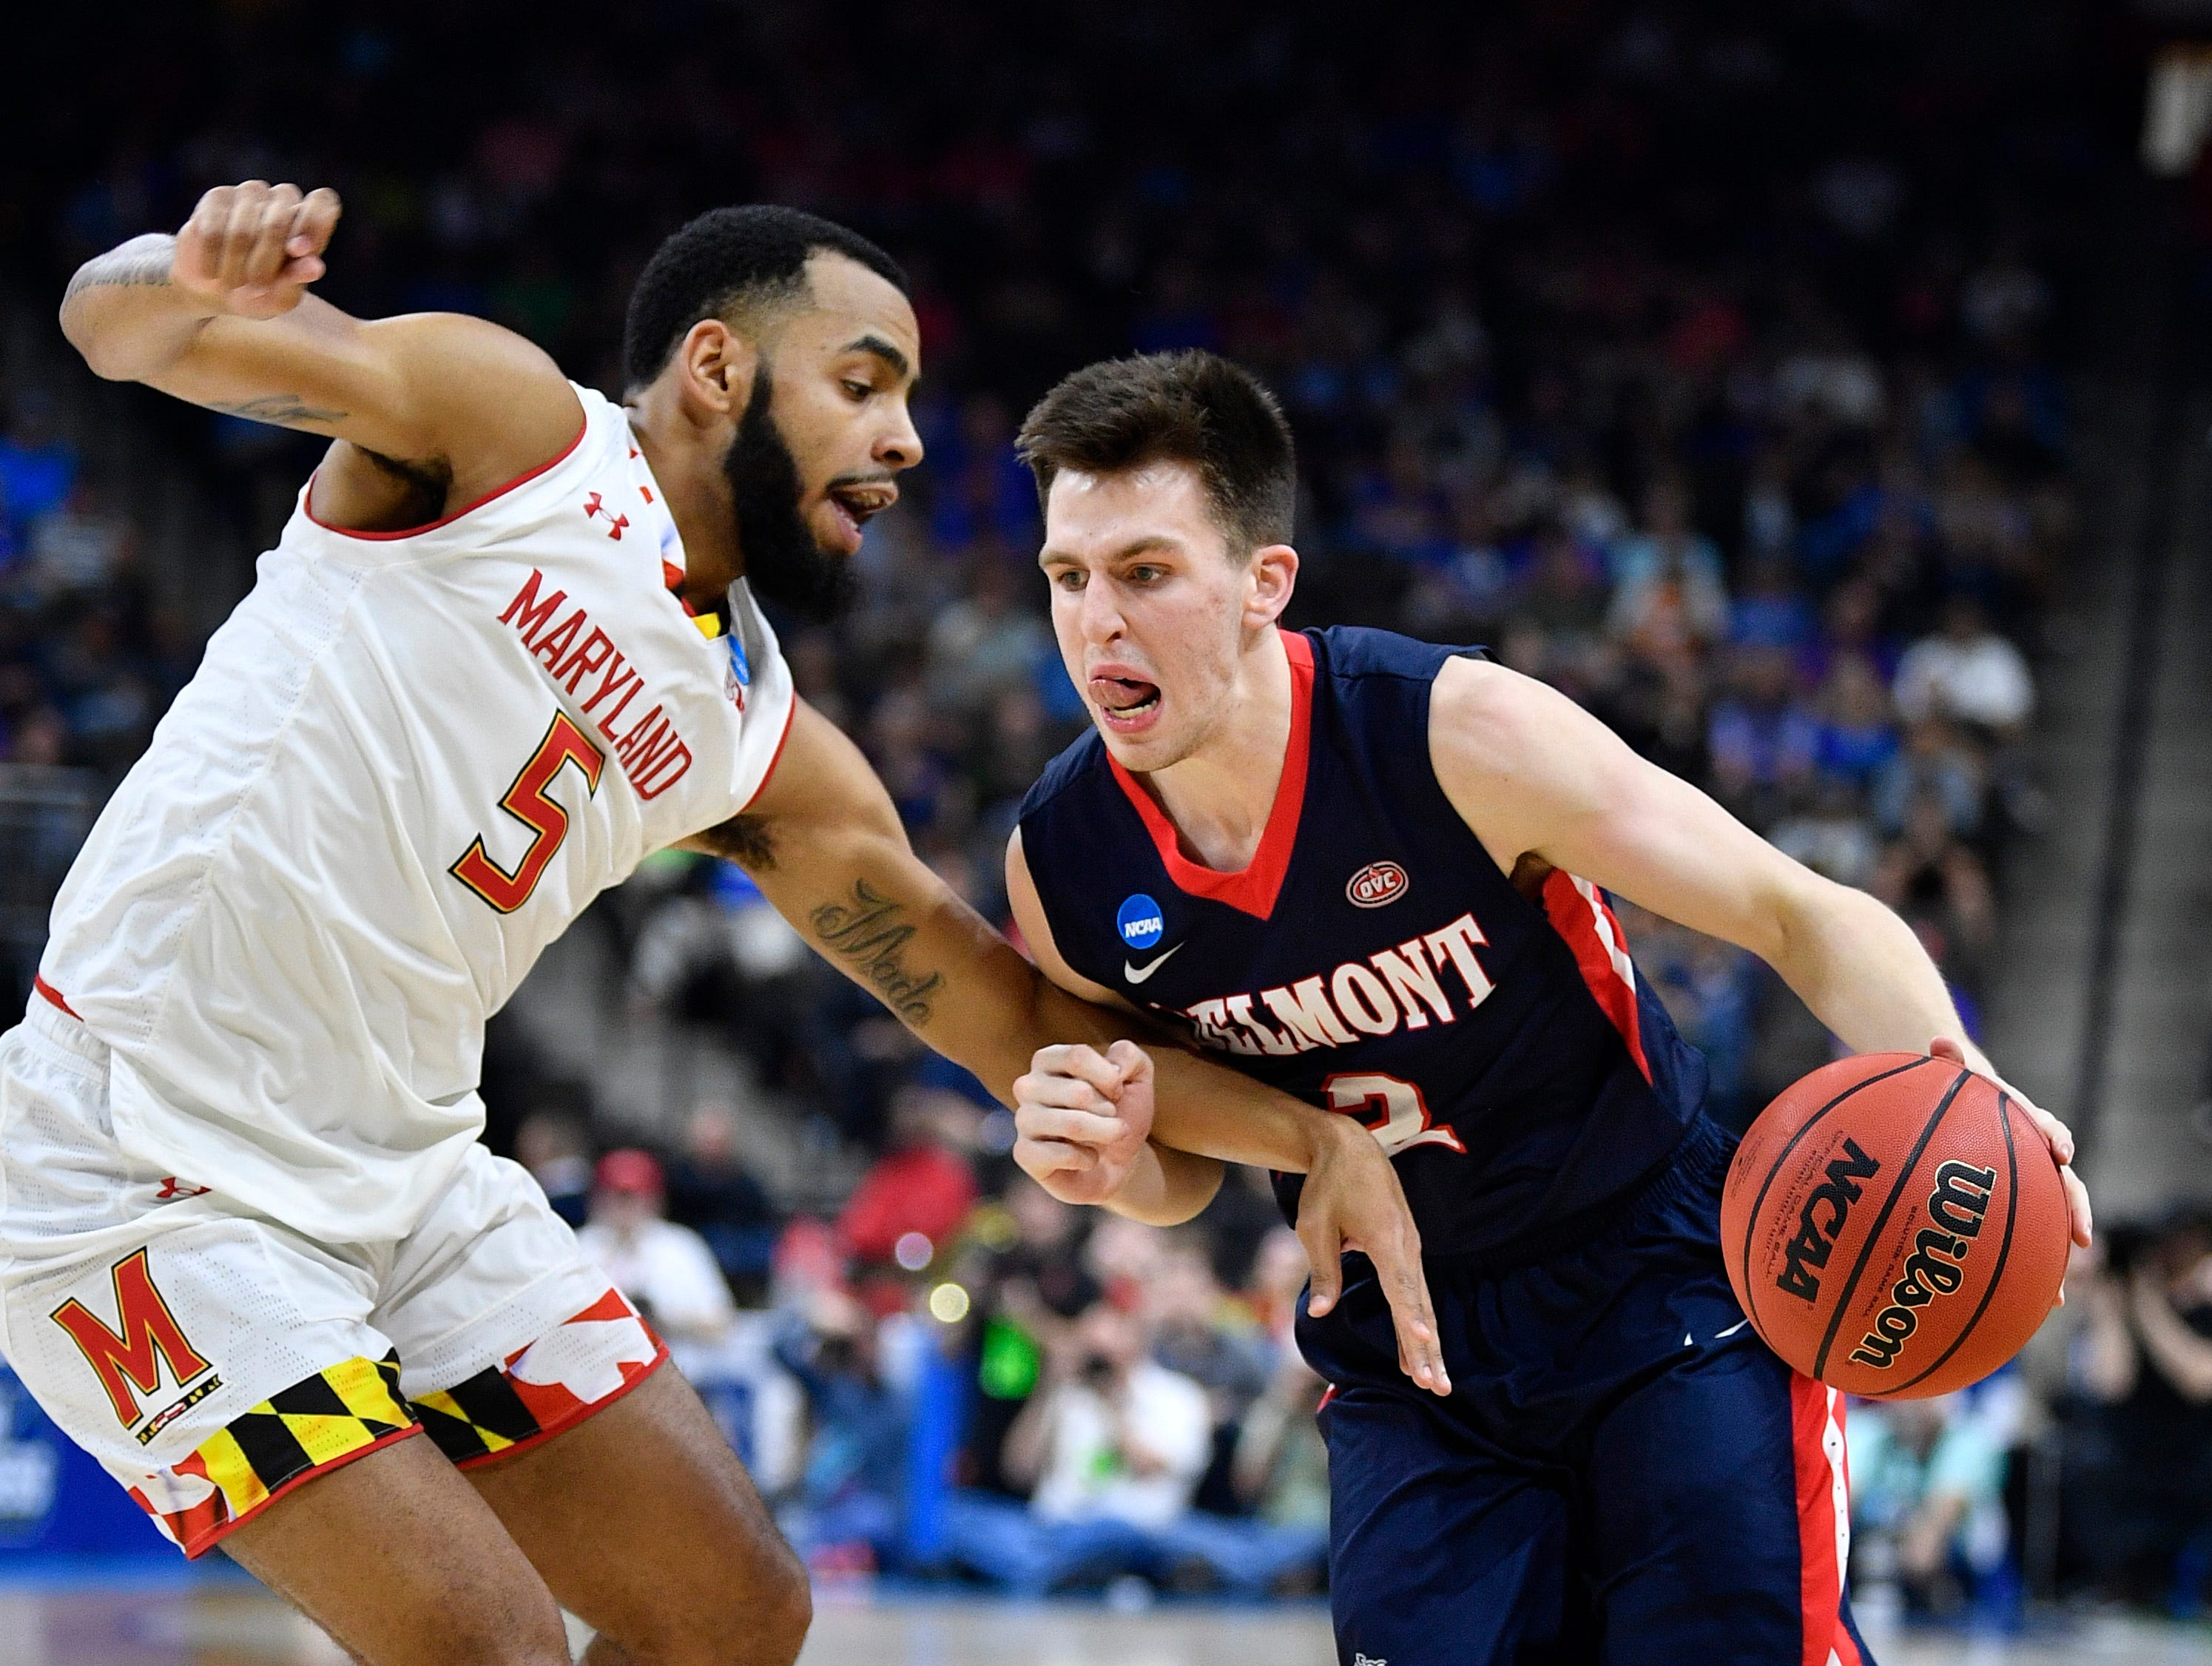 Belmont guard Grayson Murphy (2) moves the ball defended by Maryland guard Eric Ayala (5) during the first half of the first-round NCAA college basketball tournament game at VyStar Veterans Memorial Arena in Jacksonville, Fla., Thursday, March 21, 2019.